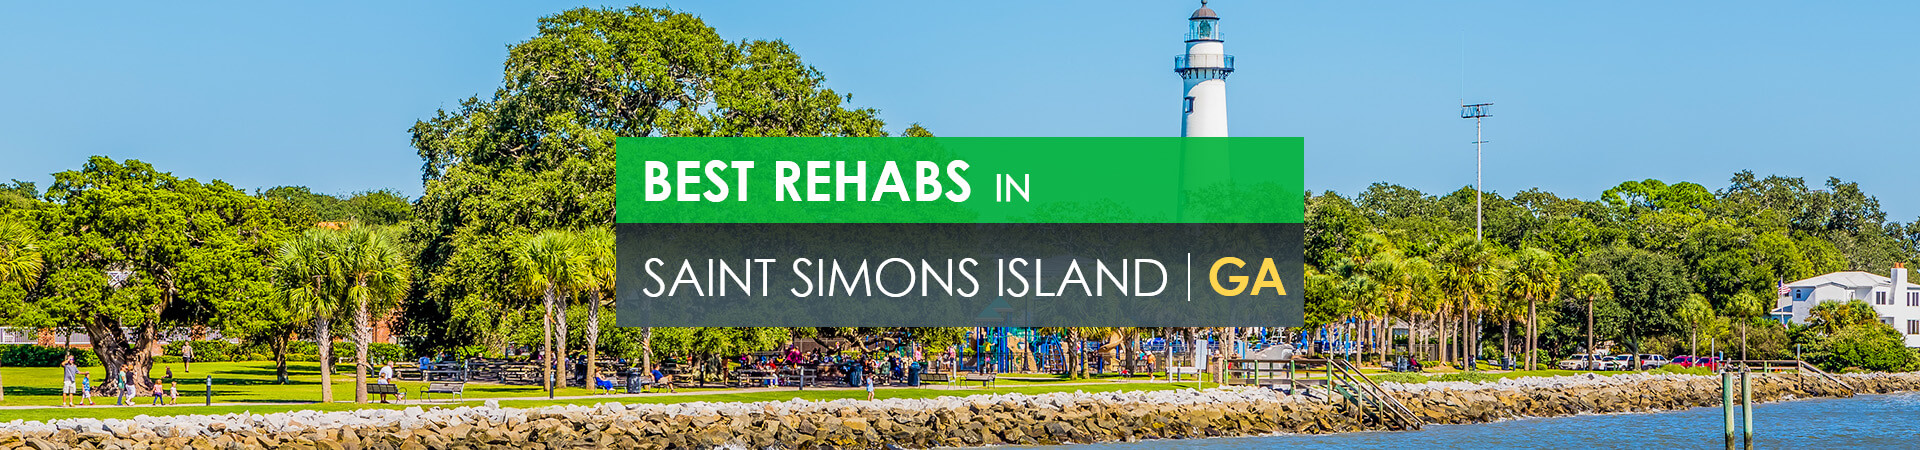 Best rehabs in Saint Simons Island, GA